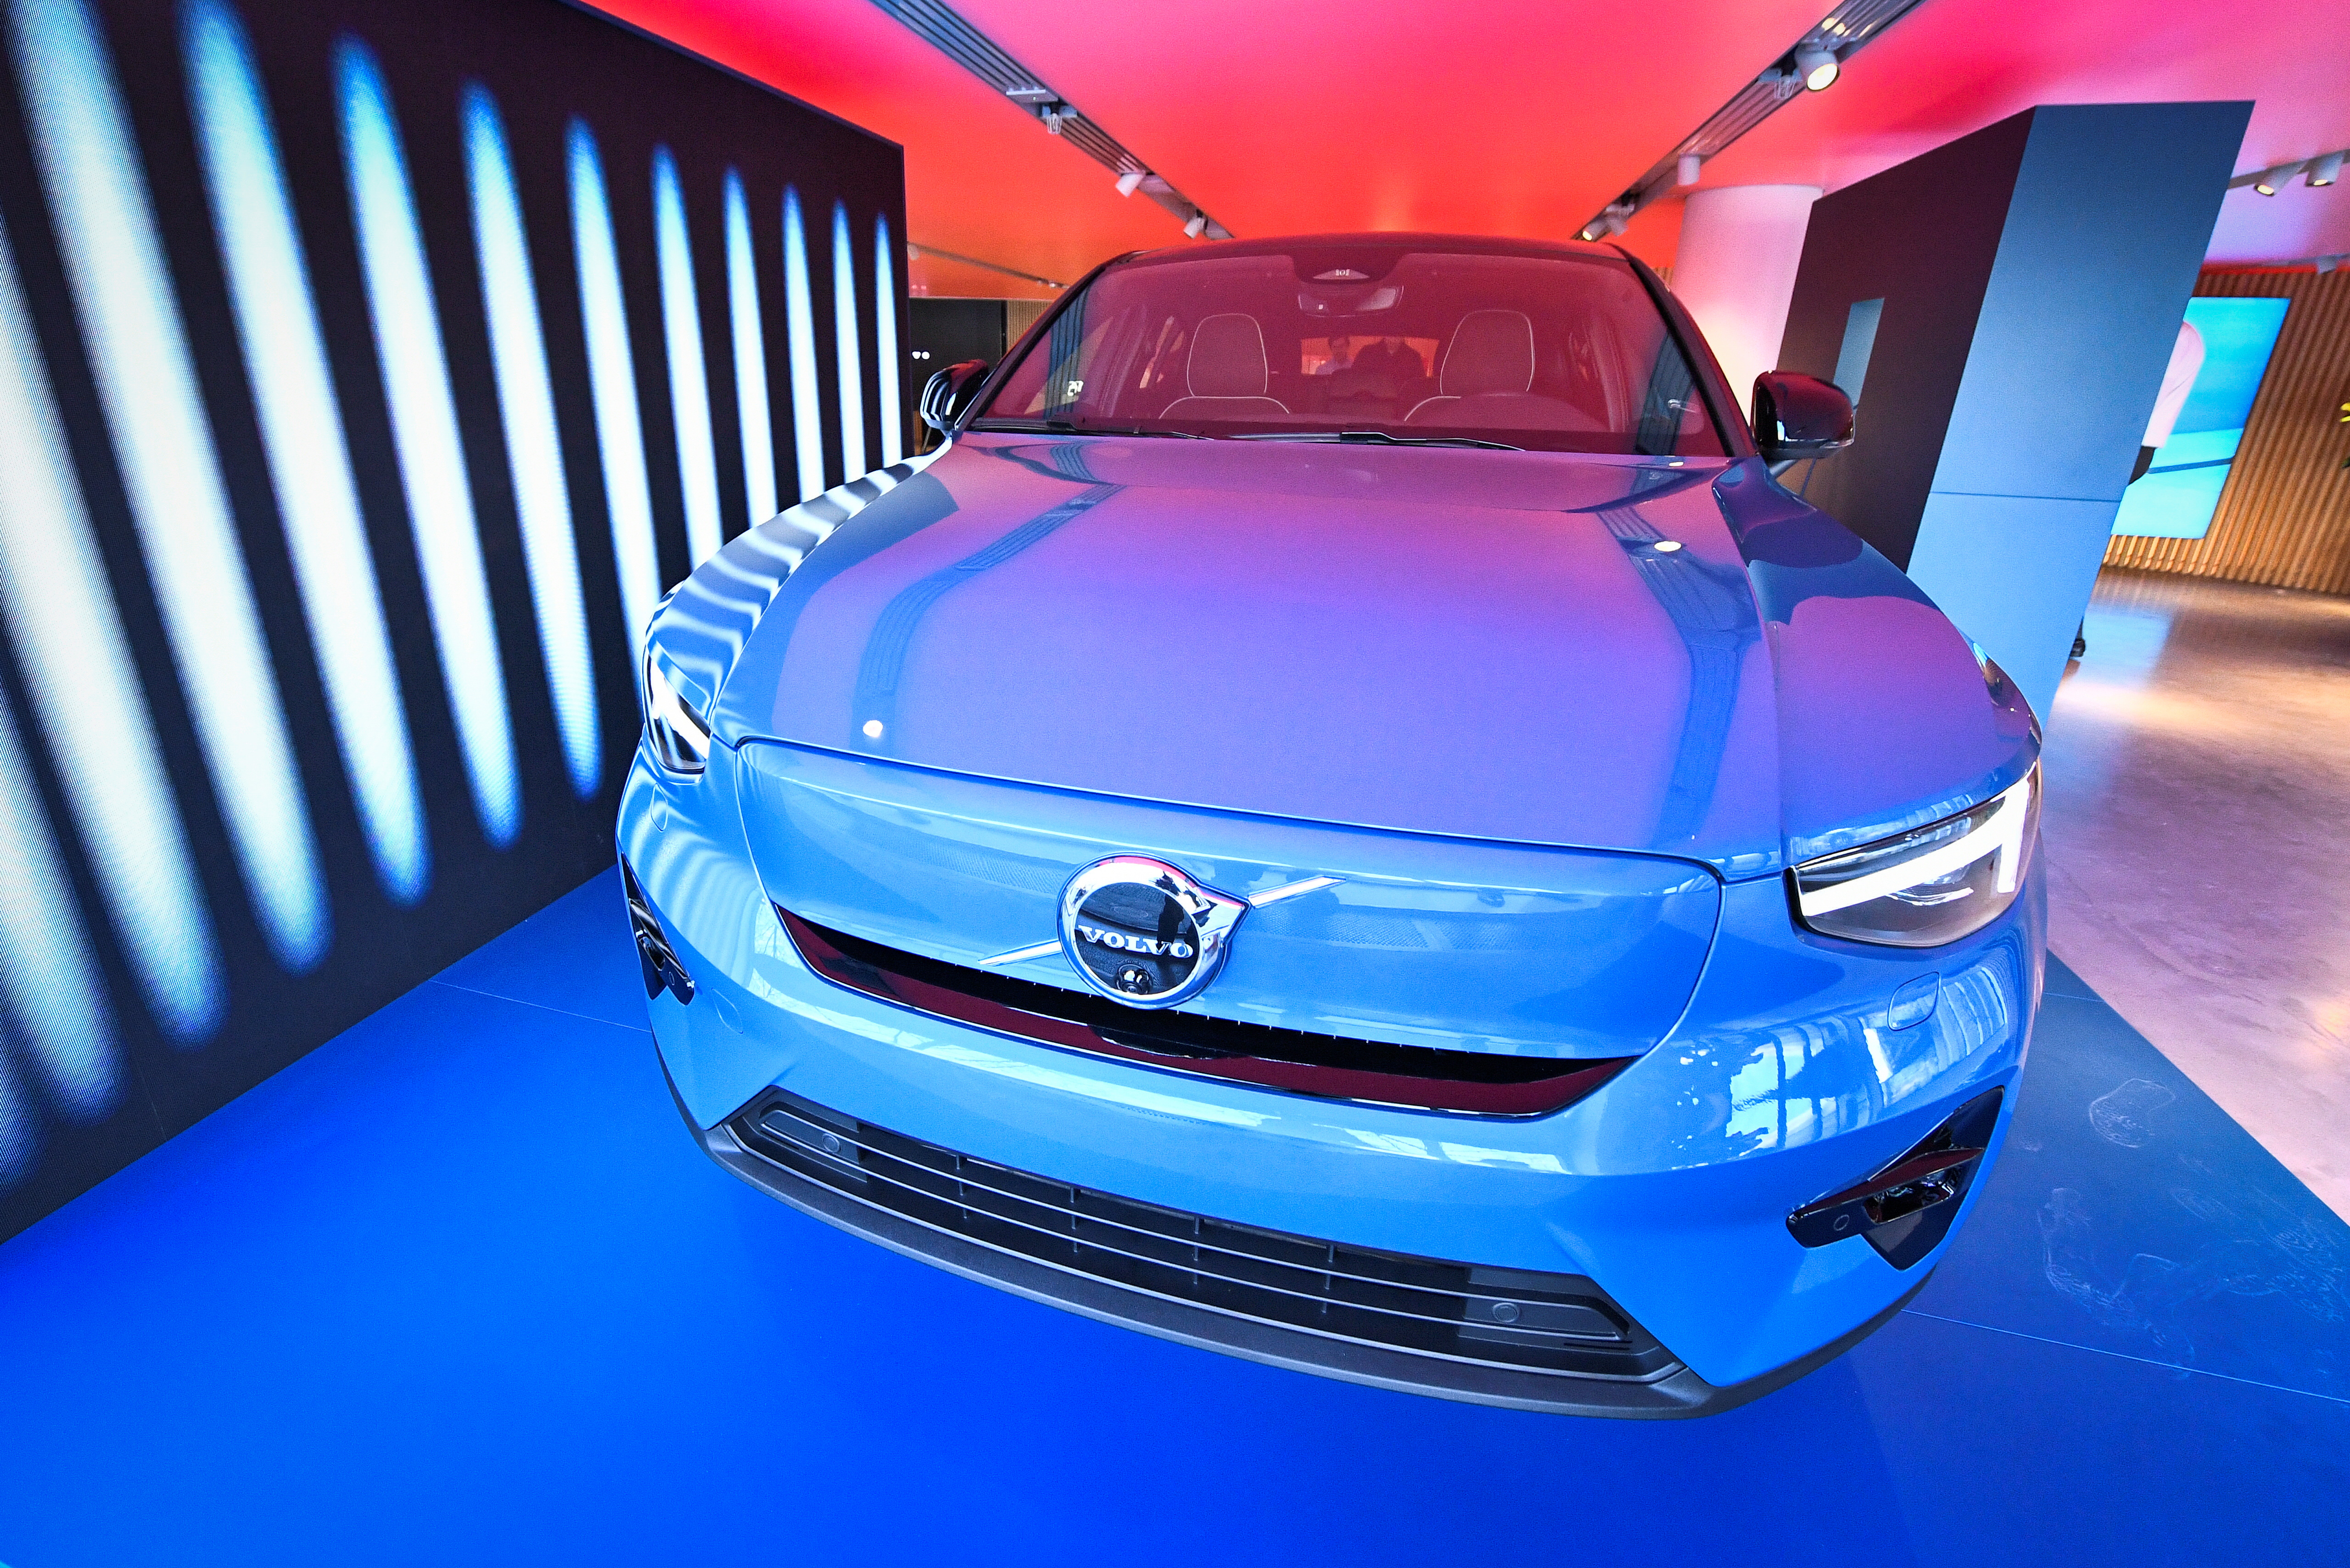 Volvo's new electric car Volvo C40 Recharge is presented in Stockholm, Sweden March 2, 2021. Claudio Breciani/TT News Agency/via REUTERS